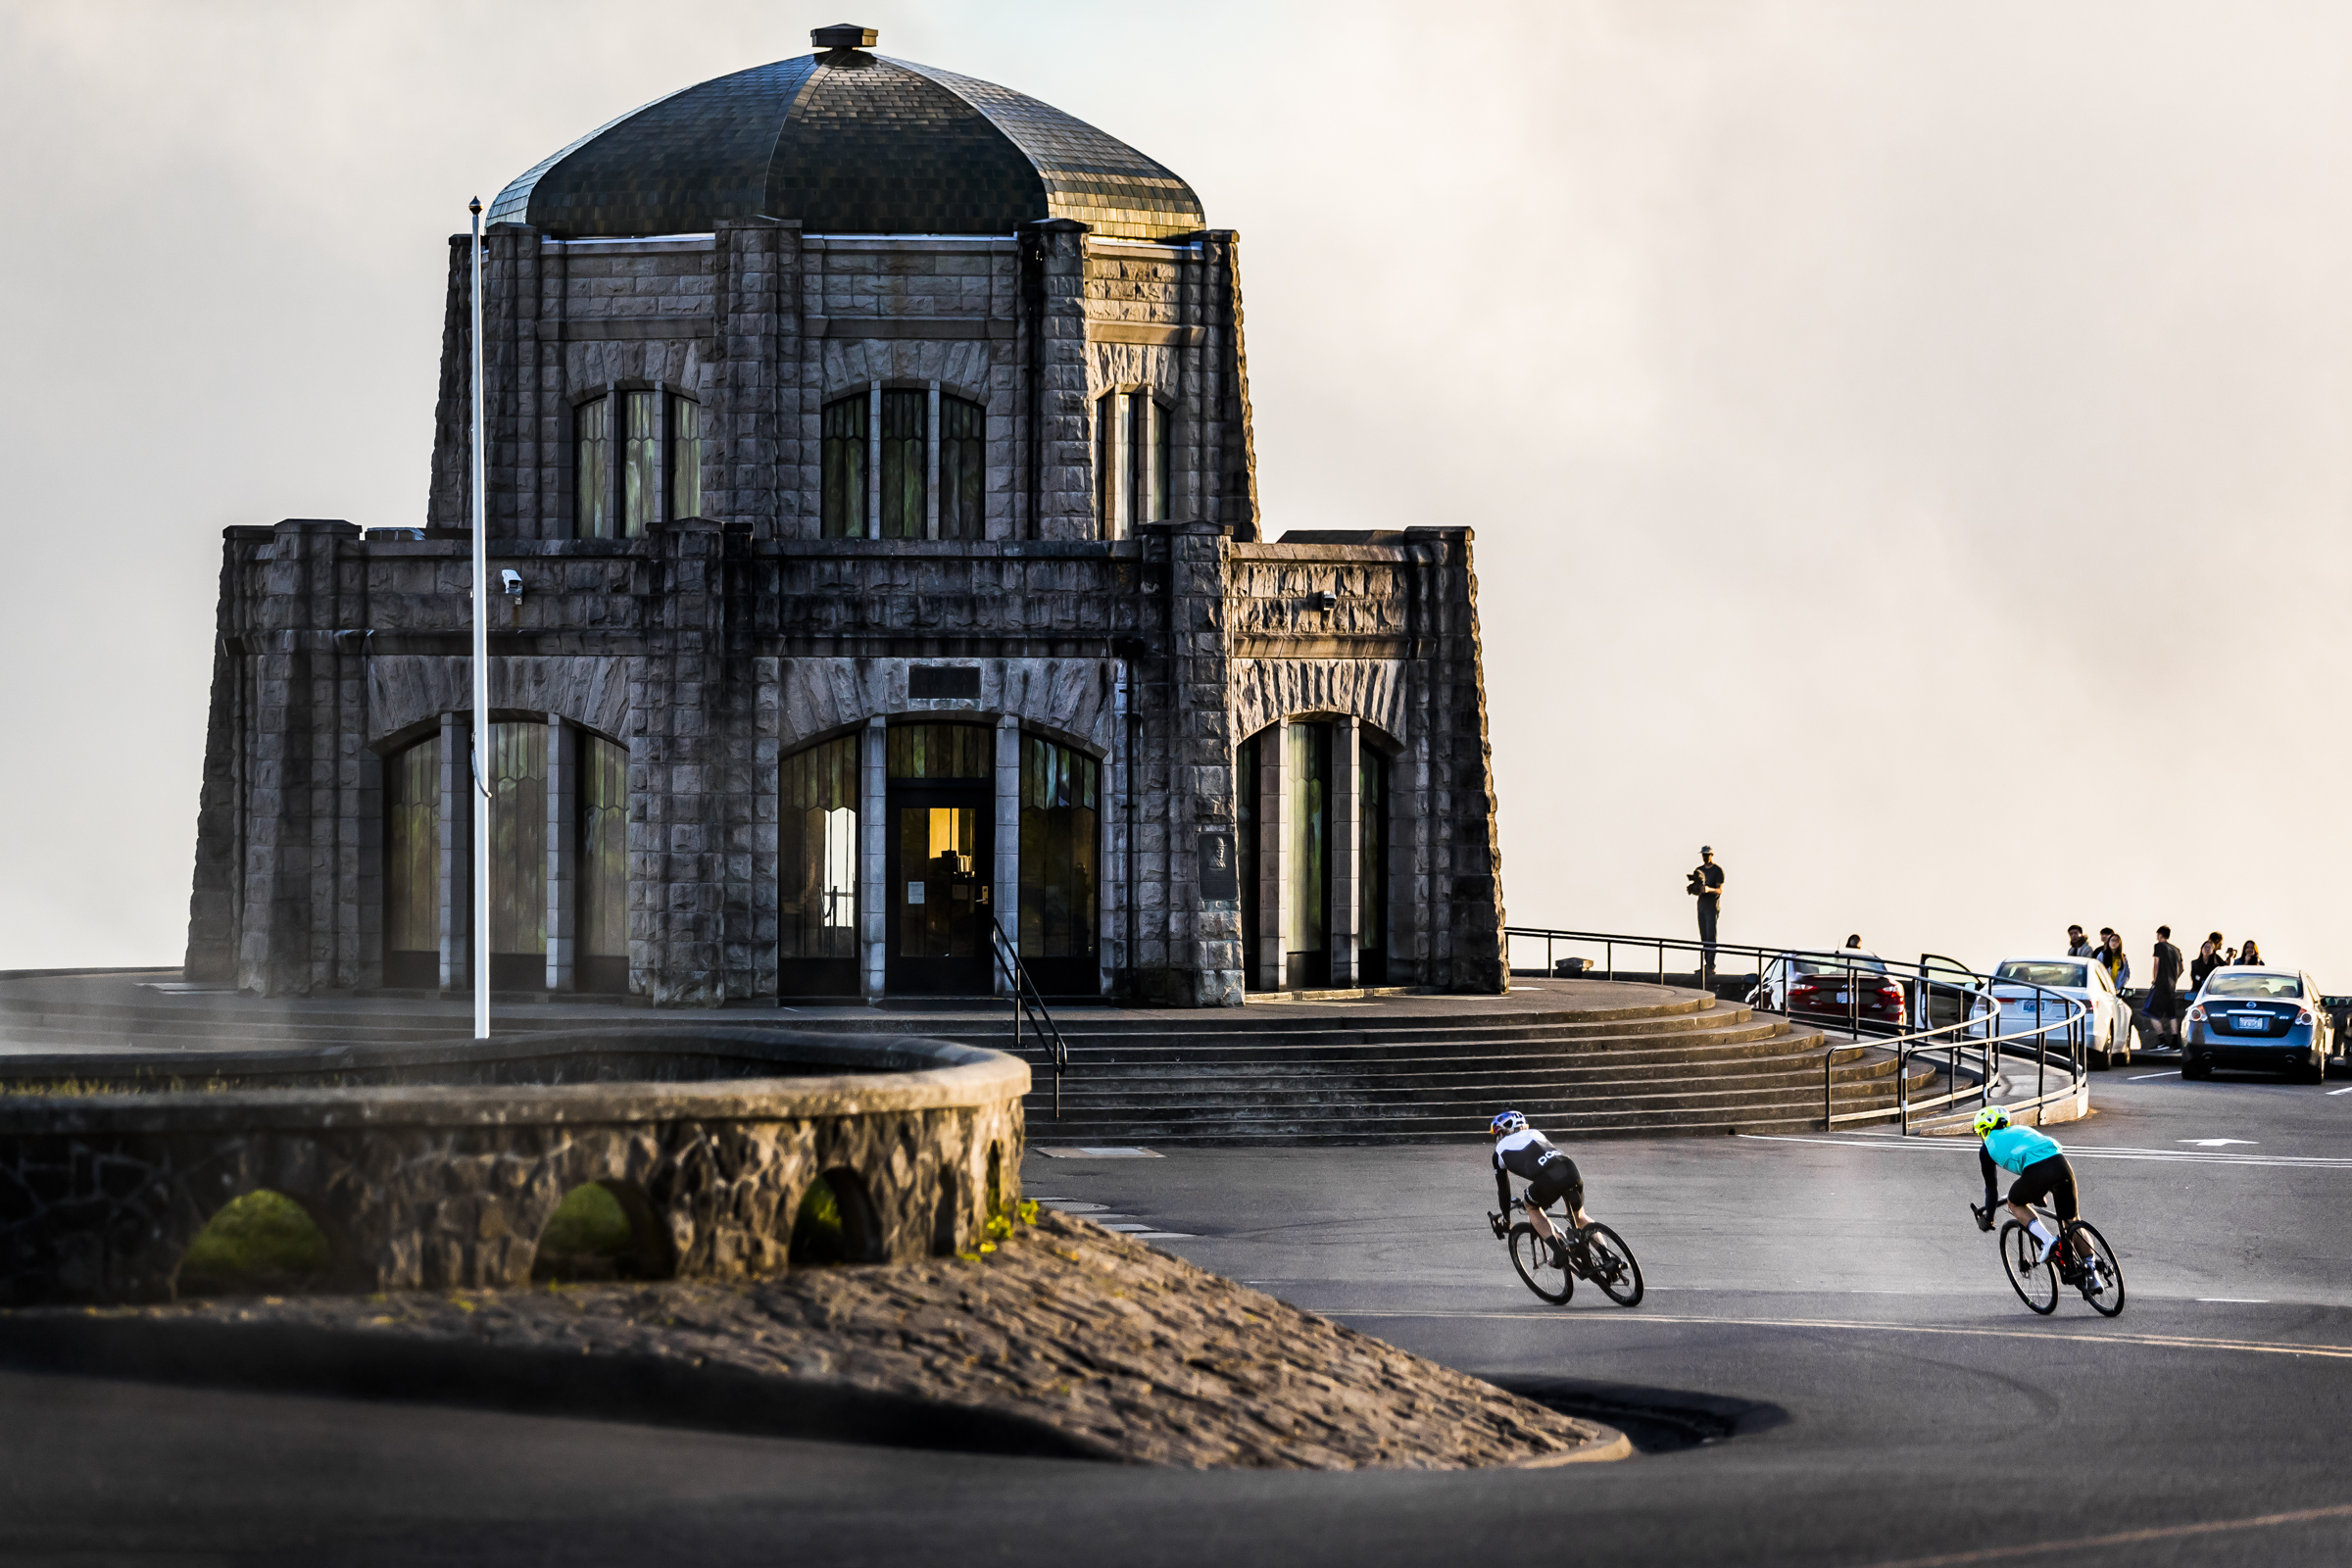 Eric Lagerstrom RedBull Triathlete. Vista House, OR